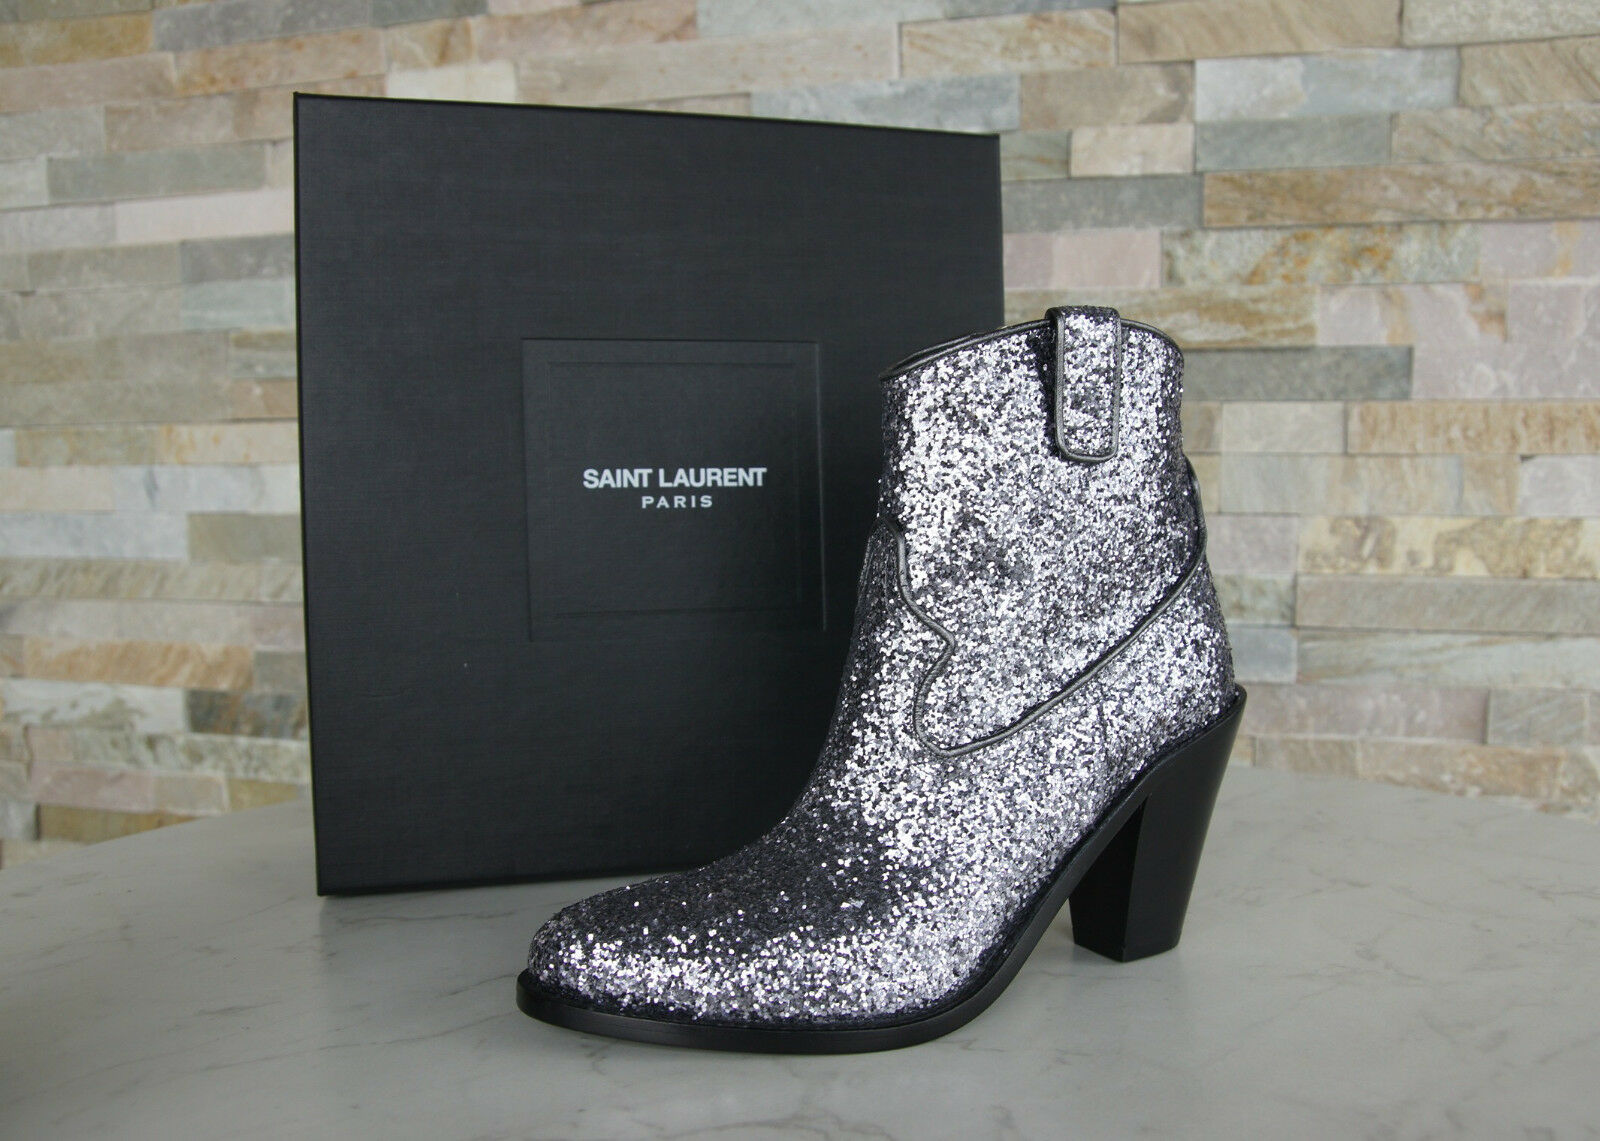 Saint laurent botines country glitter Booties zapatos nuevo PVP